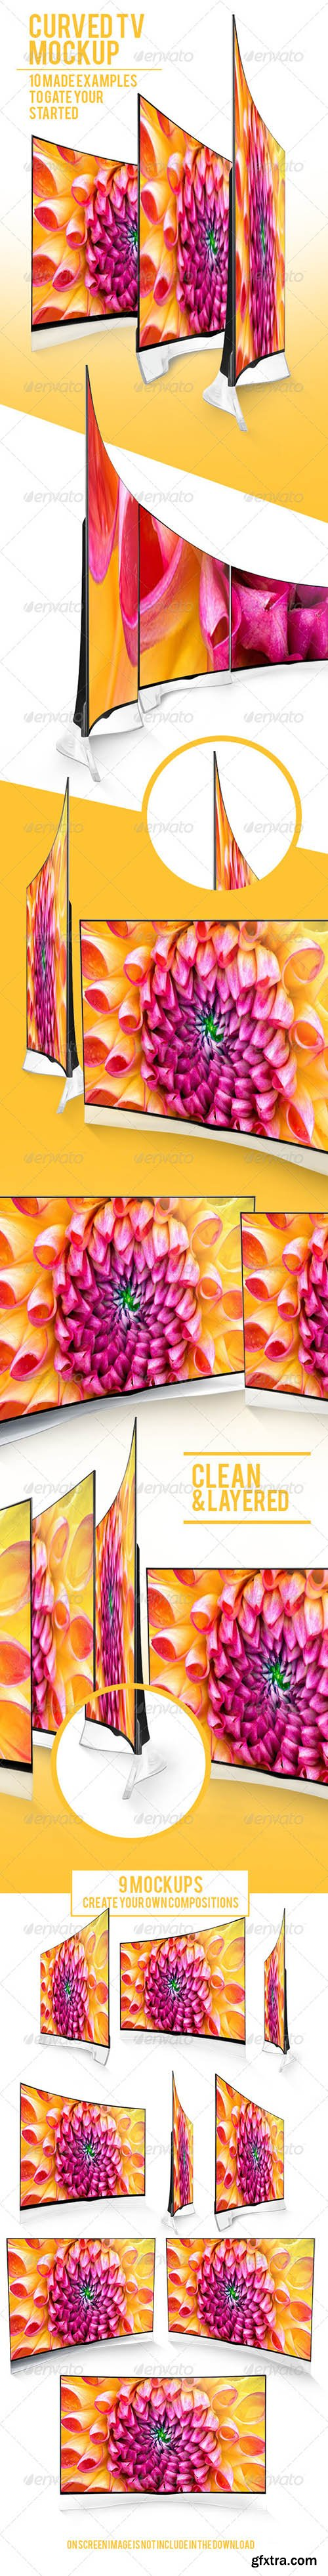 Curved TV Mockups Pack 7710035